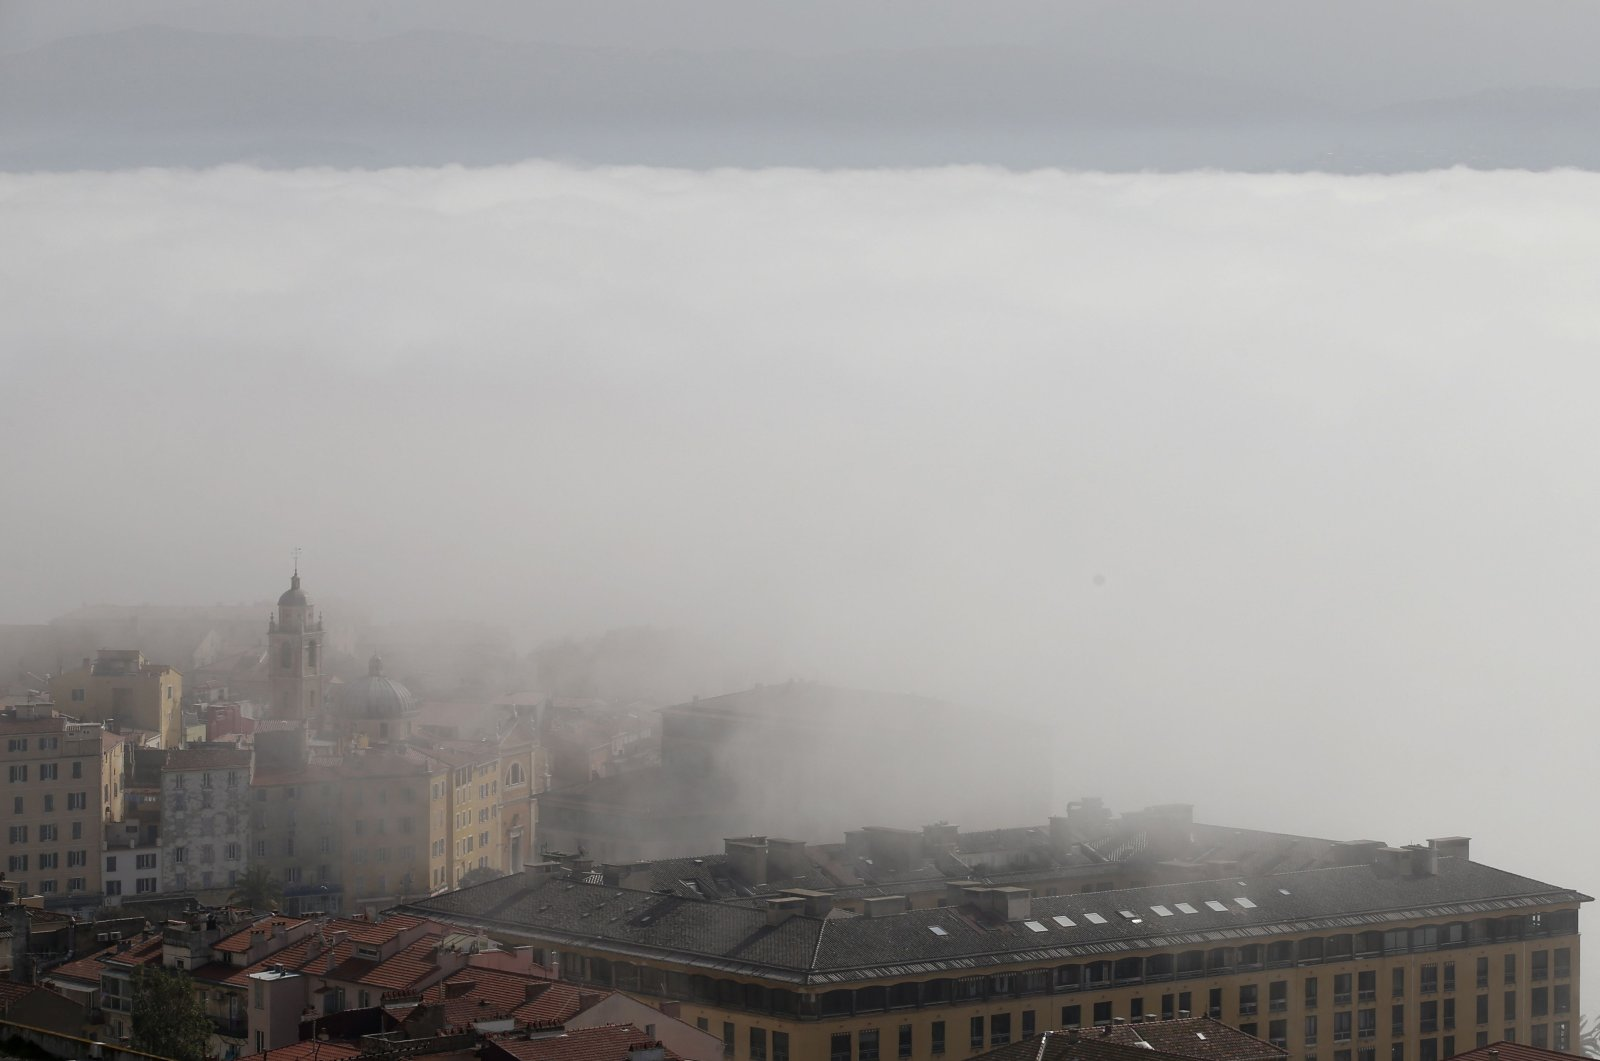 Smog and pollution settle over the capital Ajaccio on the French Mediterranean island of Corsica on Feb. 25, 2021. (AFP Photo)